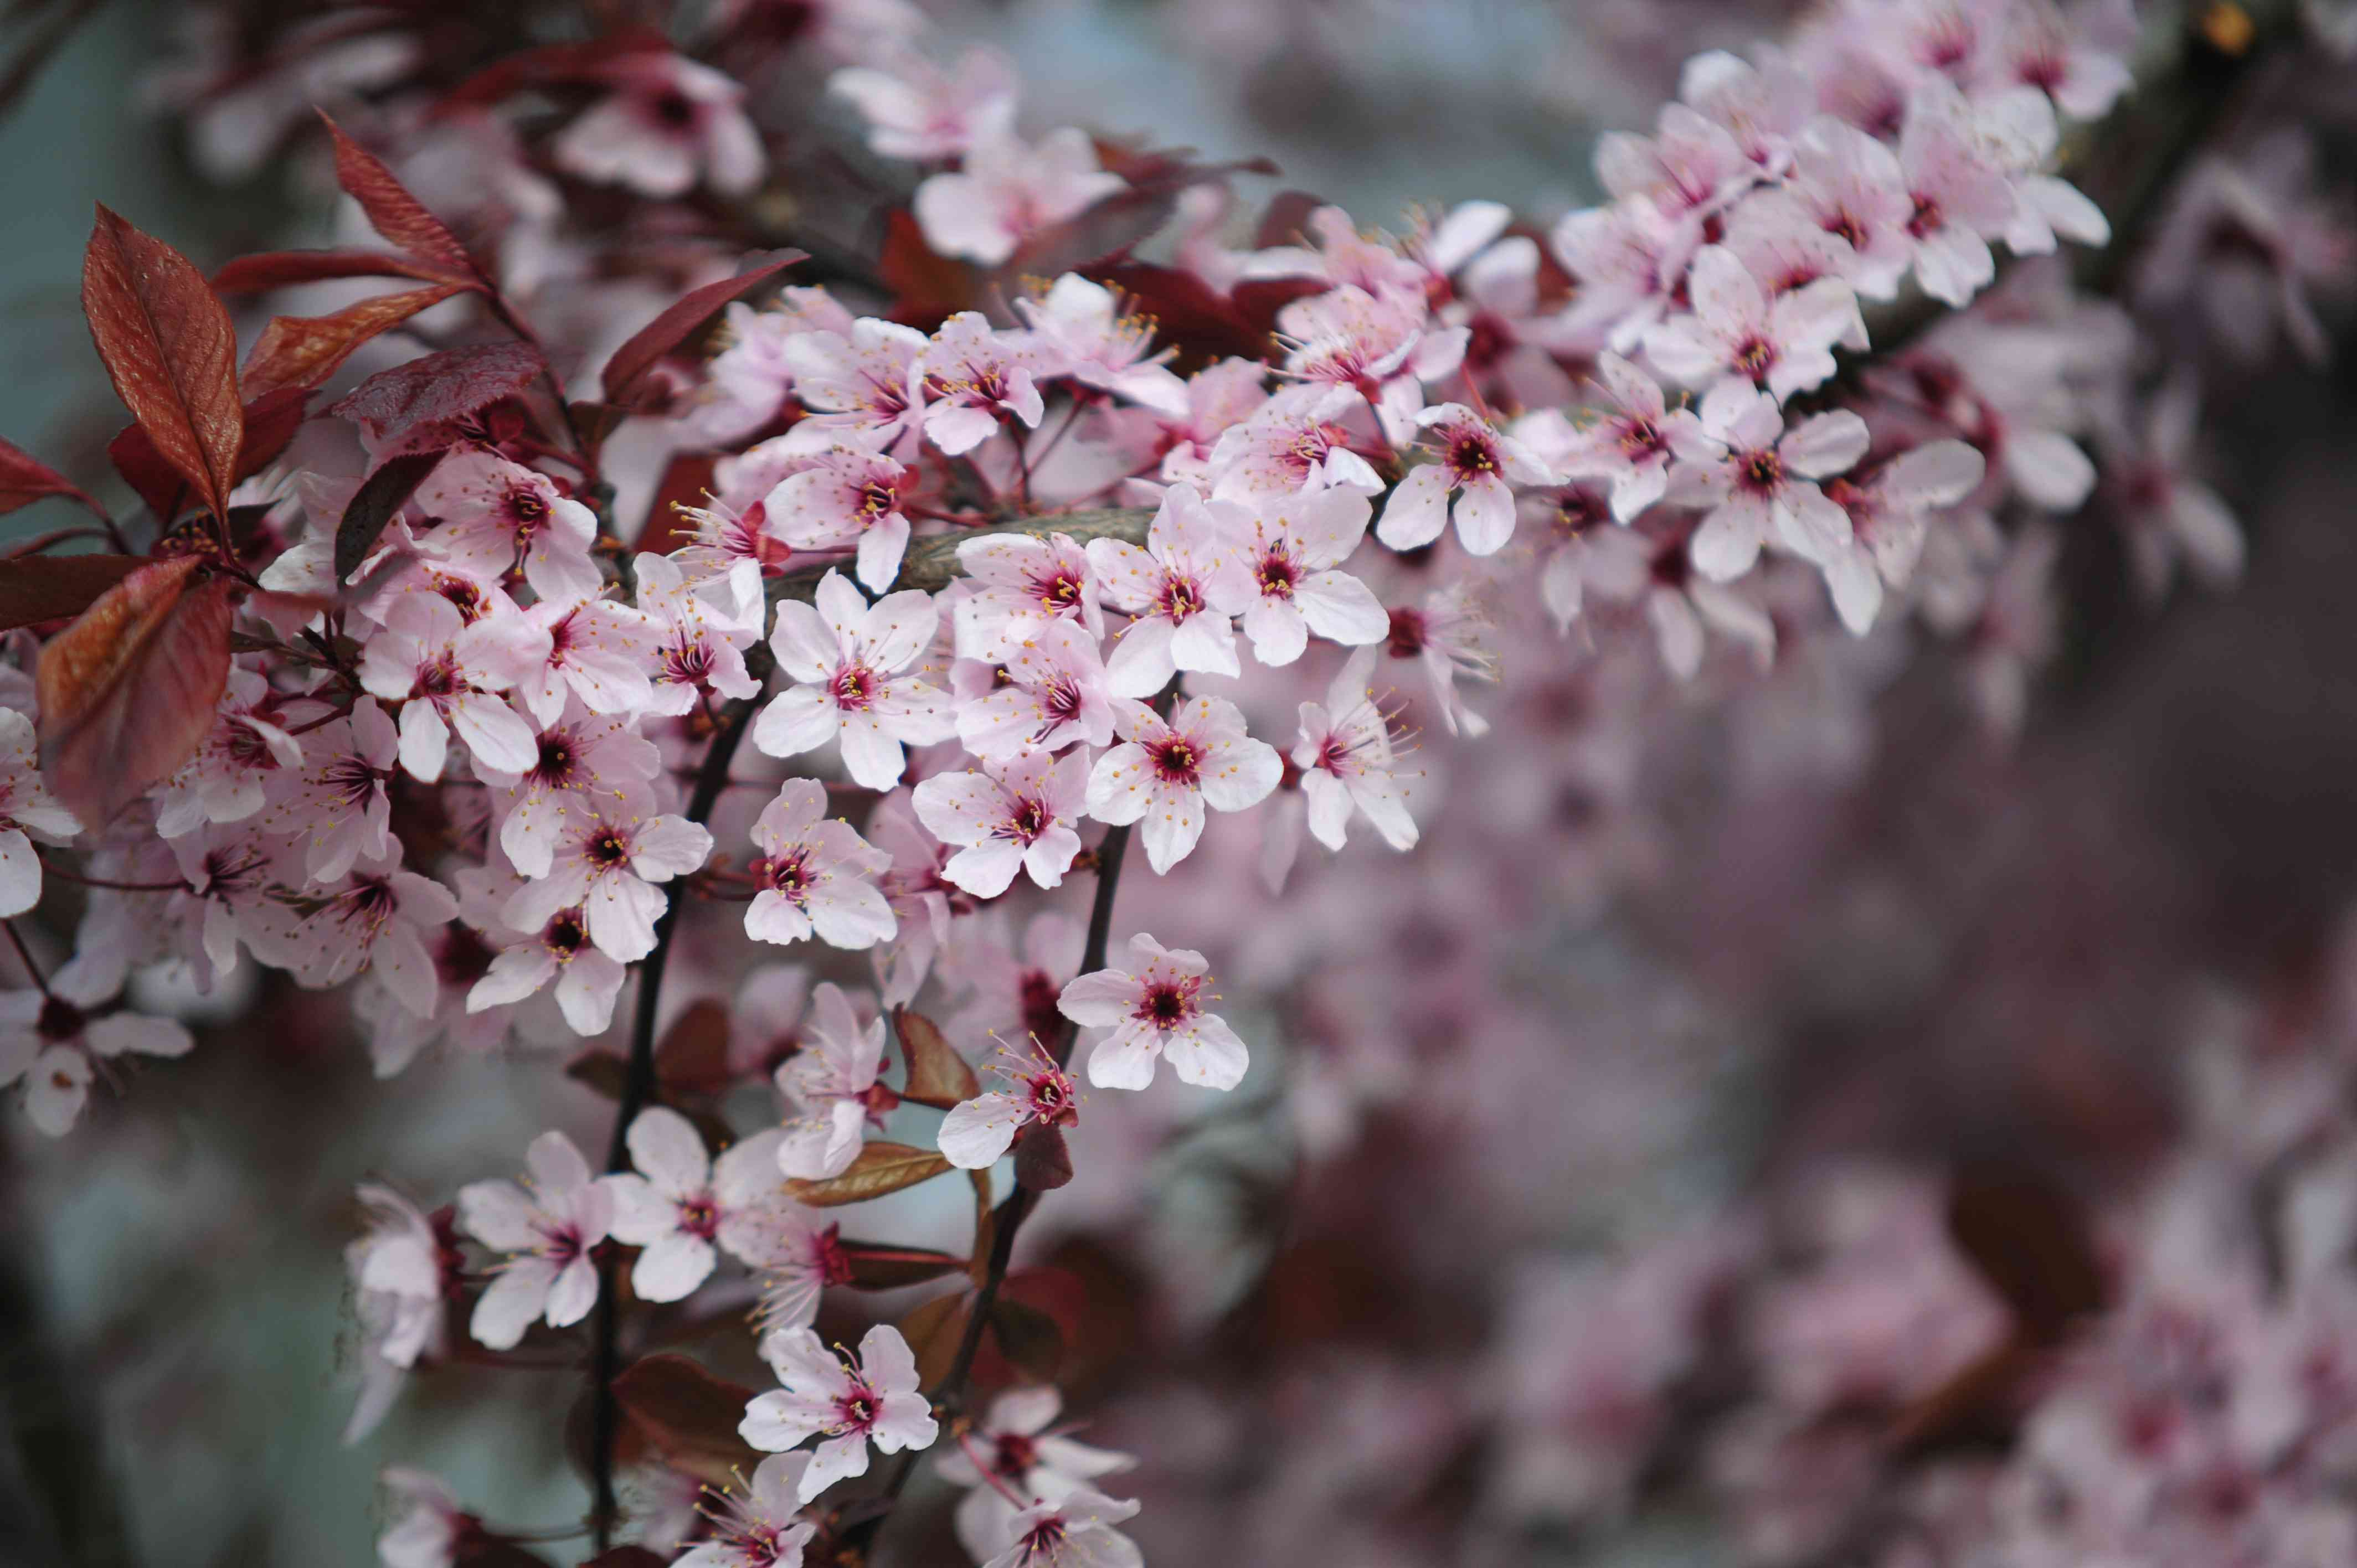 Purple leaf sand cherry tree branch with small white and pink flowers and brown leaves closeup